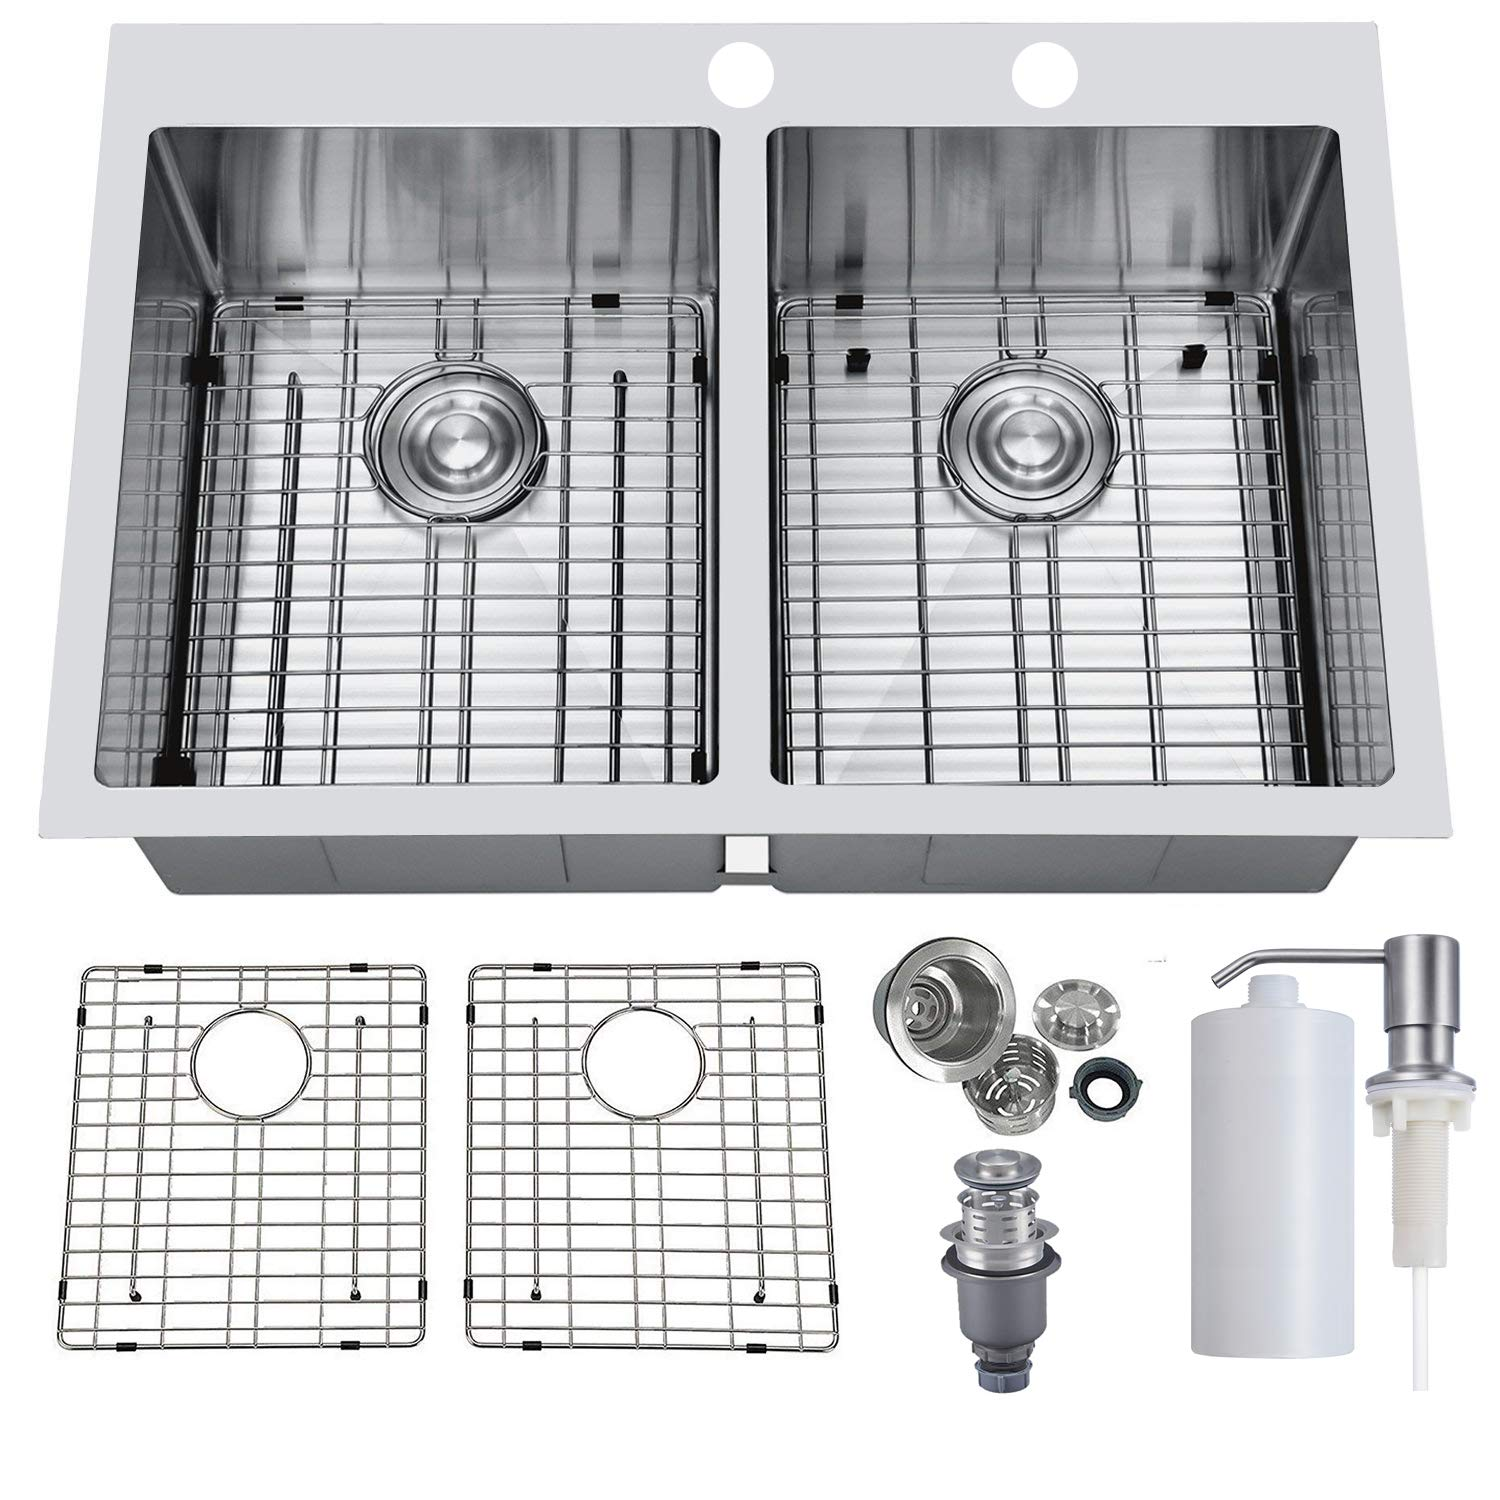 PRIMART PHT33DE Handmade 33'' Inch 16 Gauge Top mount 50/50 Double Bowls Stainless Steel Drop In Kitchen Sinks w/Stainless Steel Bottom Grid,Sink Strainer&Soap Dispenser